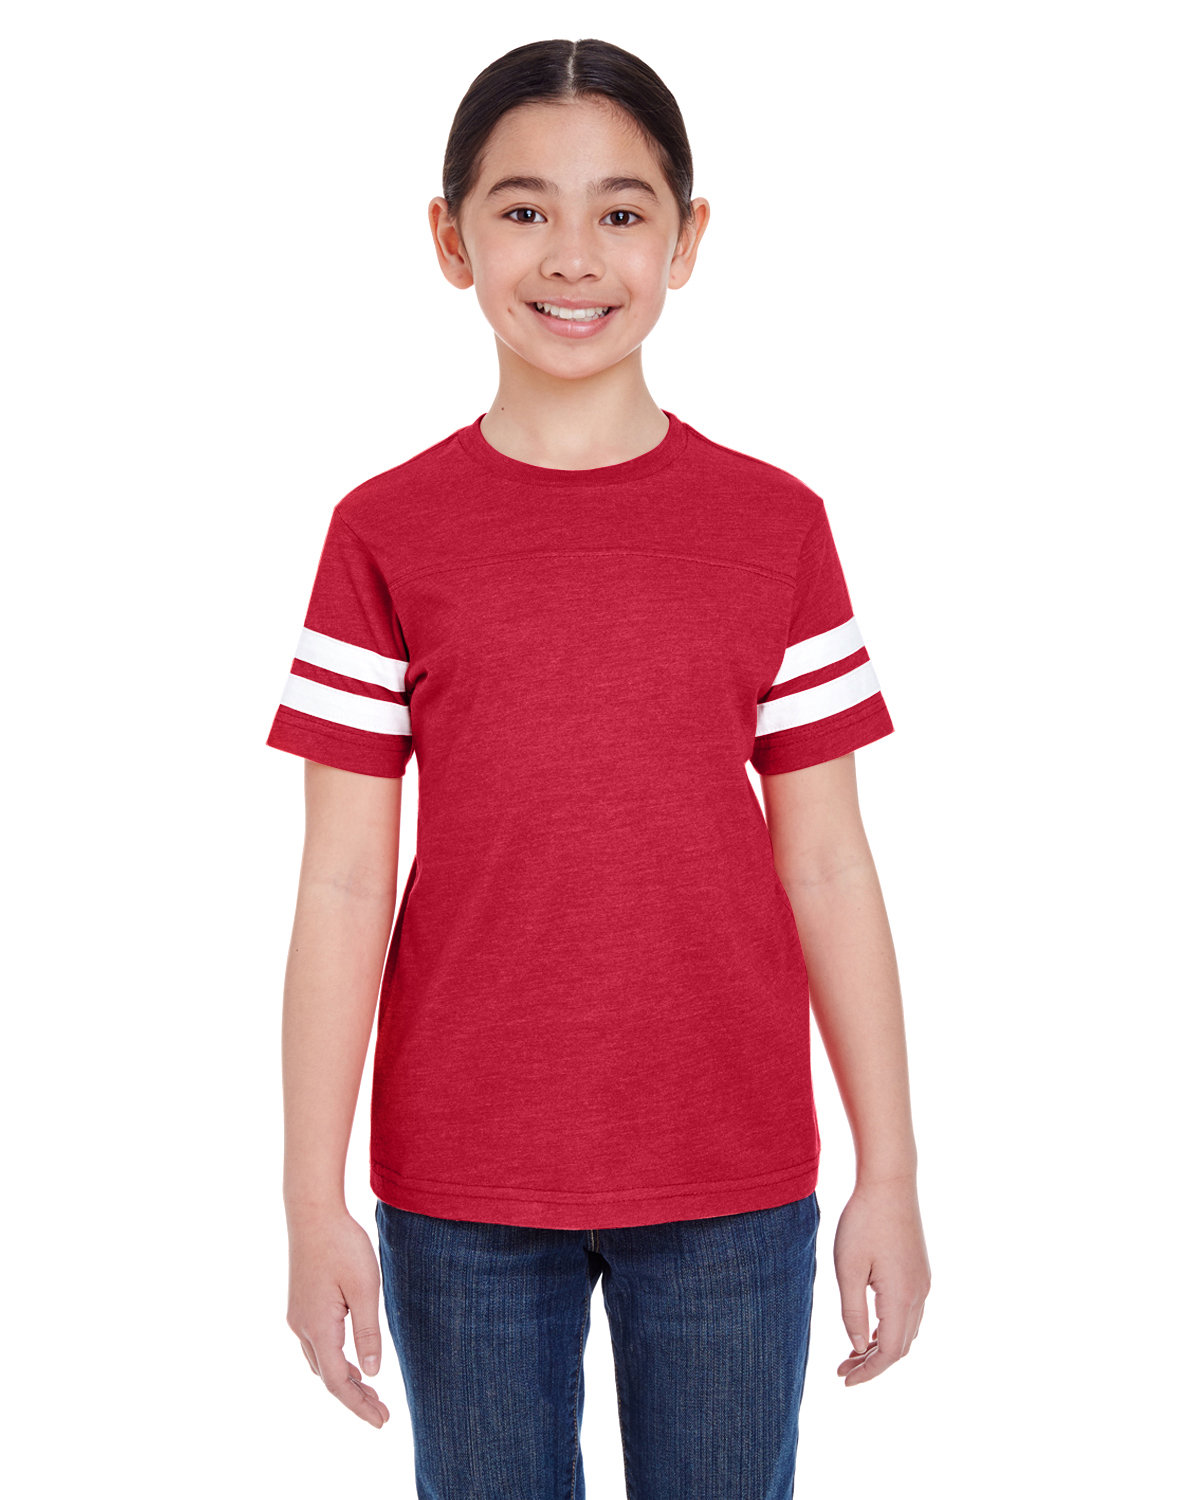 LAT Youth Football Fine Jersey T-Shirt VN RED/ BLD WHT